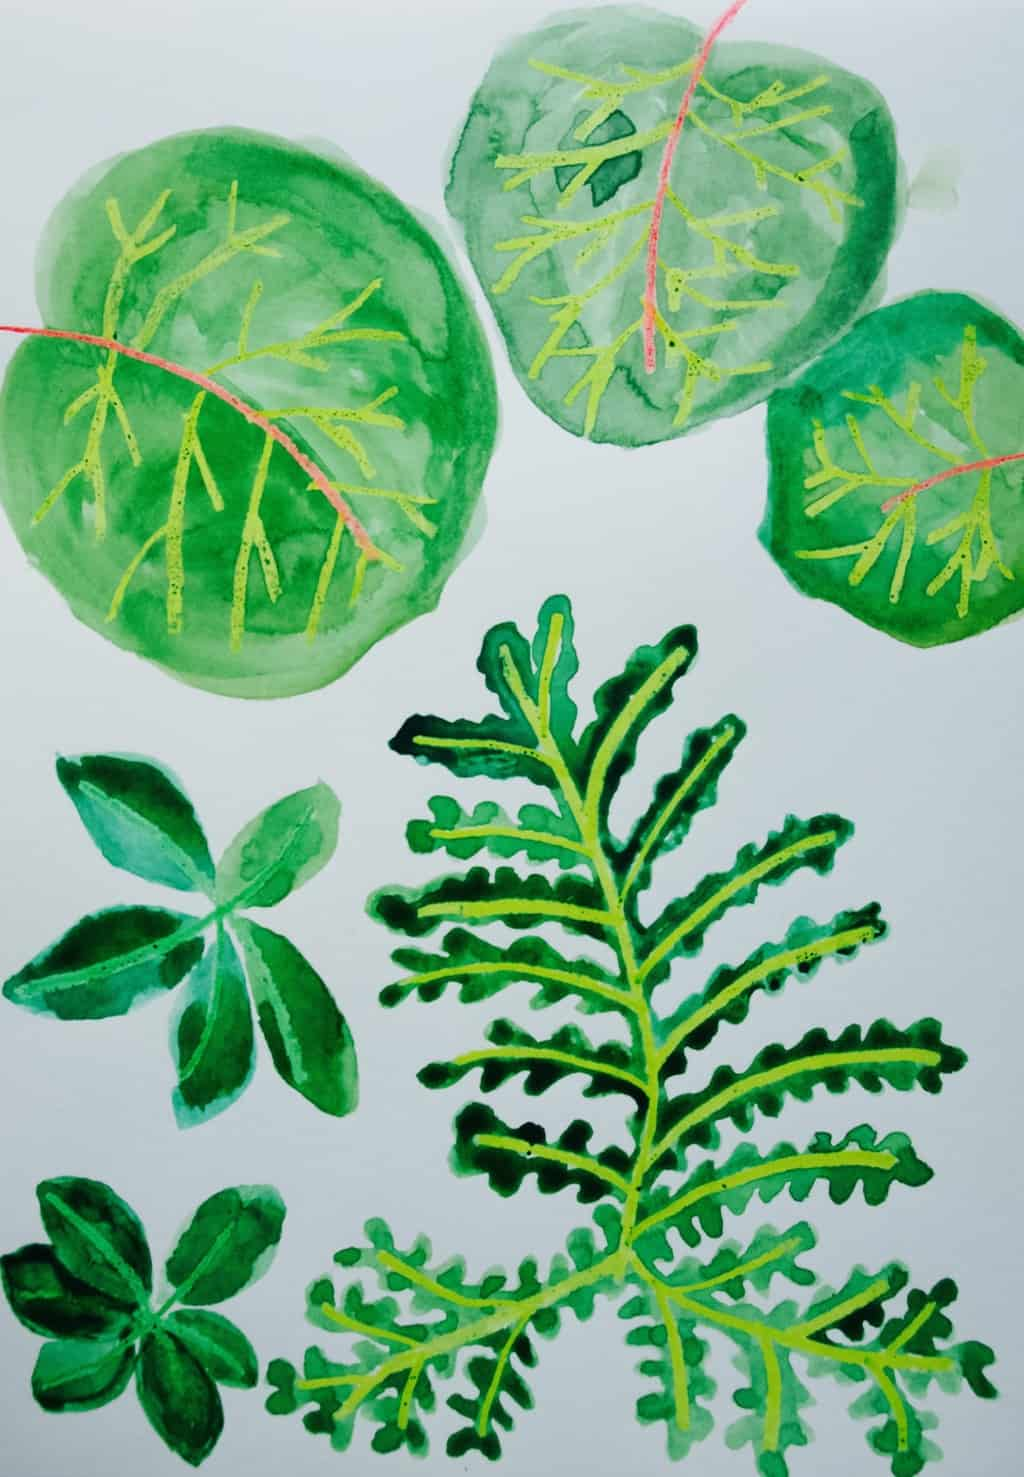 Watercolour challenge: inspired by jungle